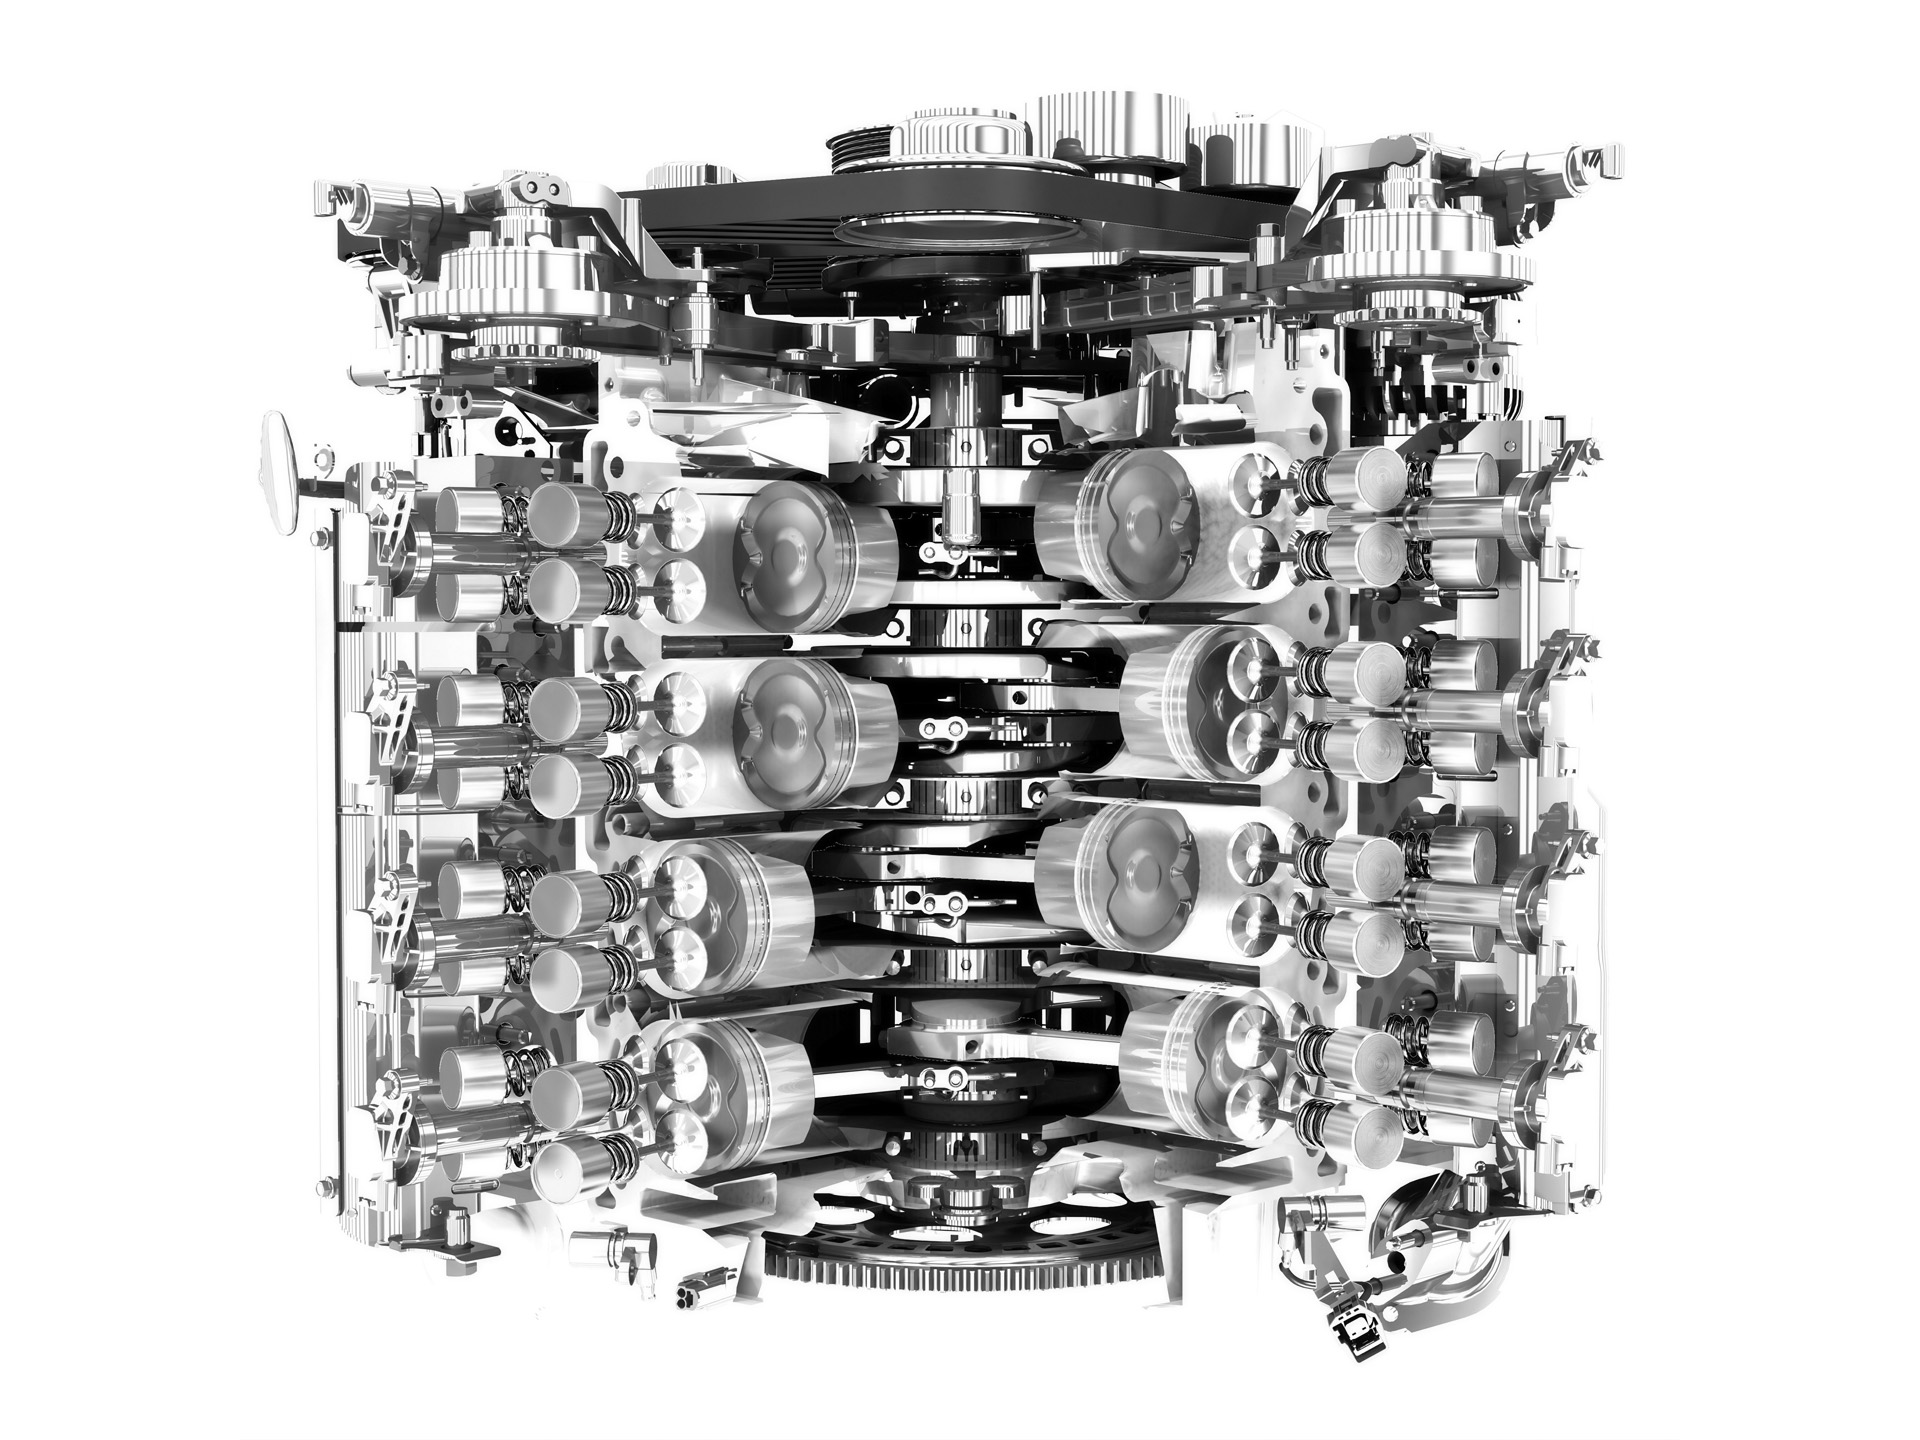 Sample P3412 Engine